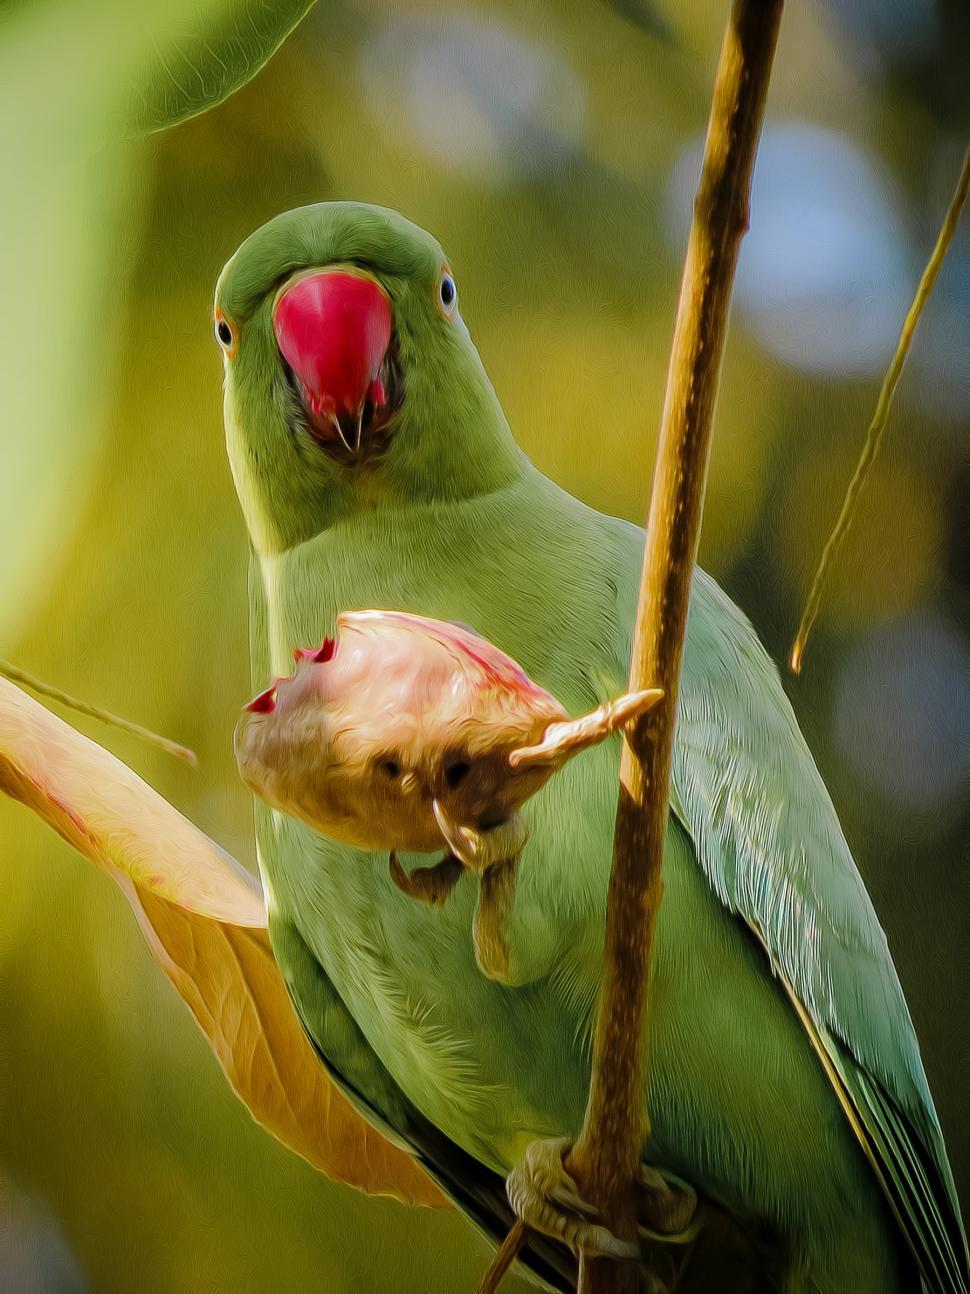 Download Free Stock HD Photo of Parrot, Rose-ringed Parakeet - Digital Art  Online